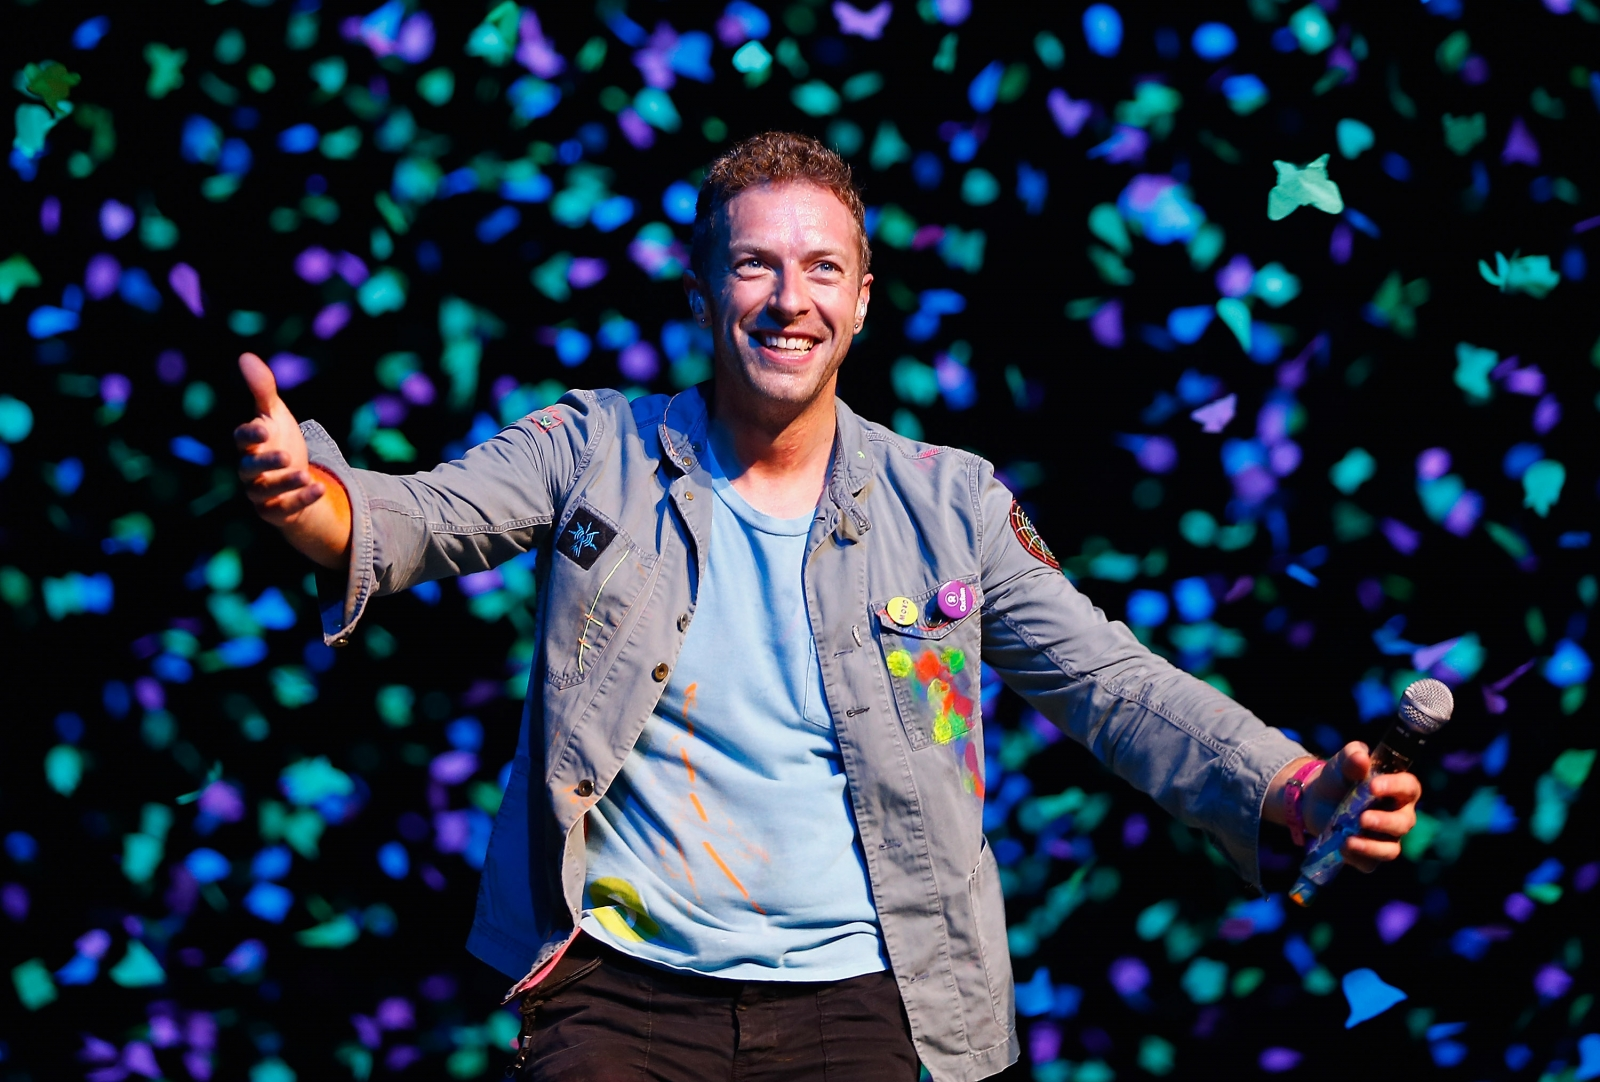 coldplay-singer-chris-martin.jpg